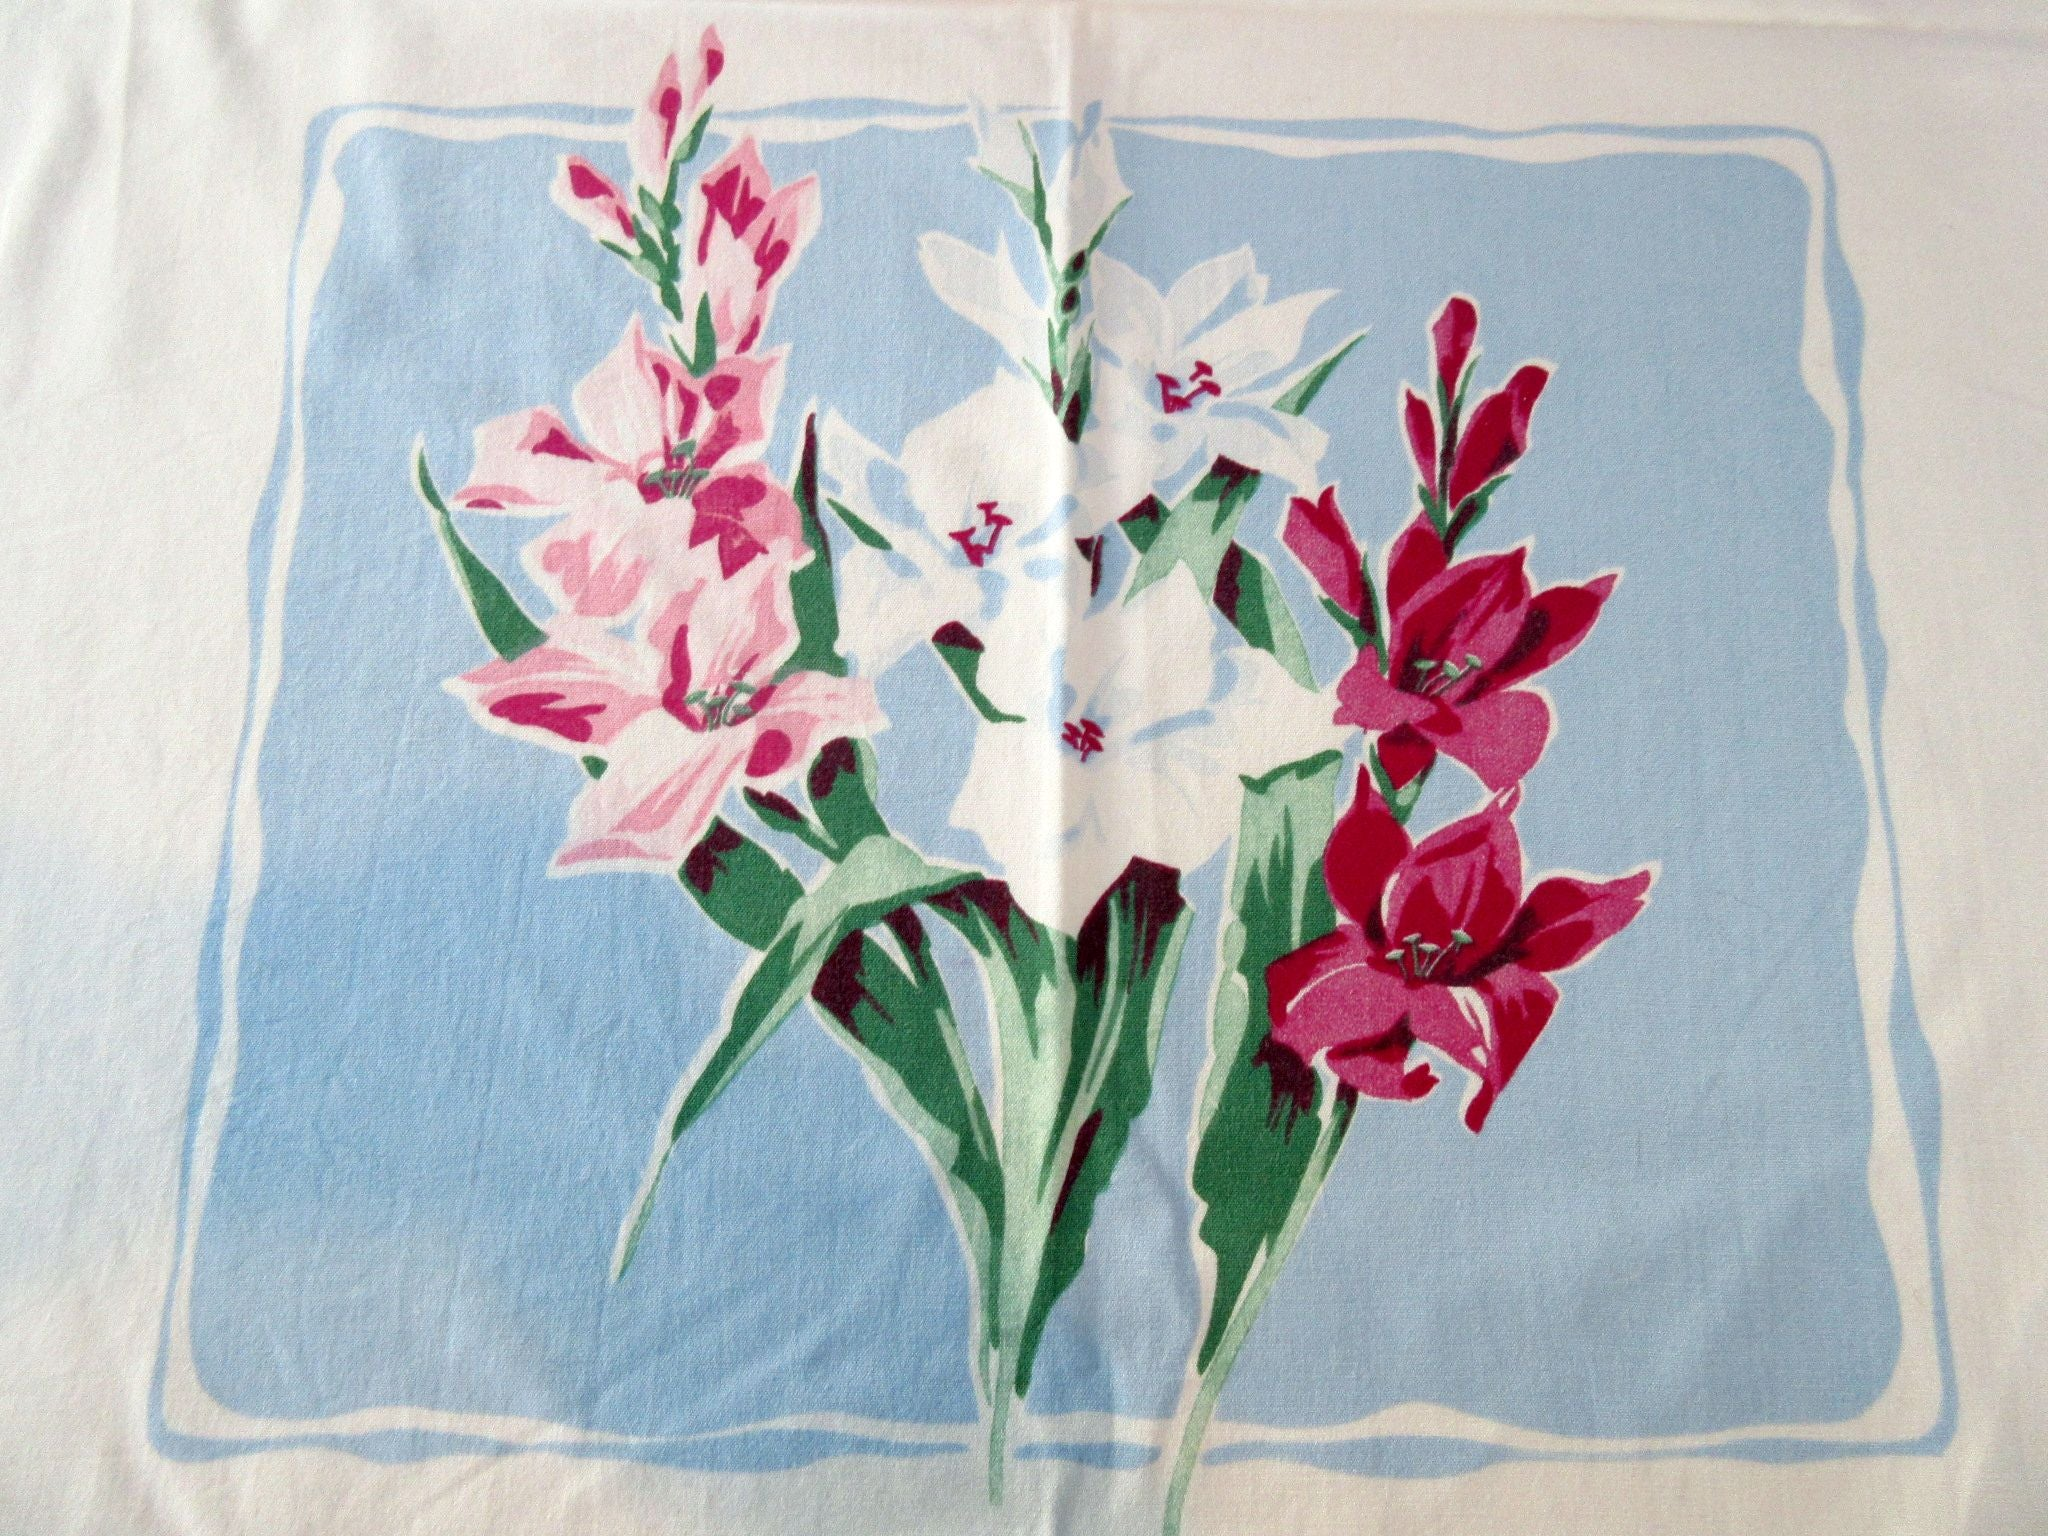 Pink Gladioli on Blue America's Pride Floral Vintage Printed Tablecloth (59 X 55)